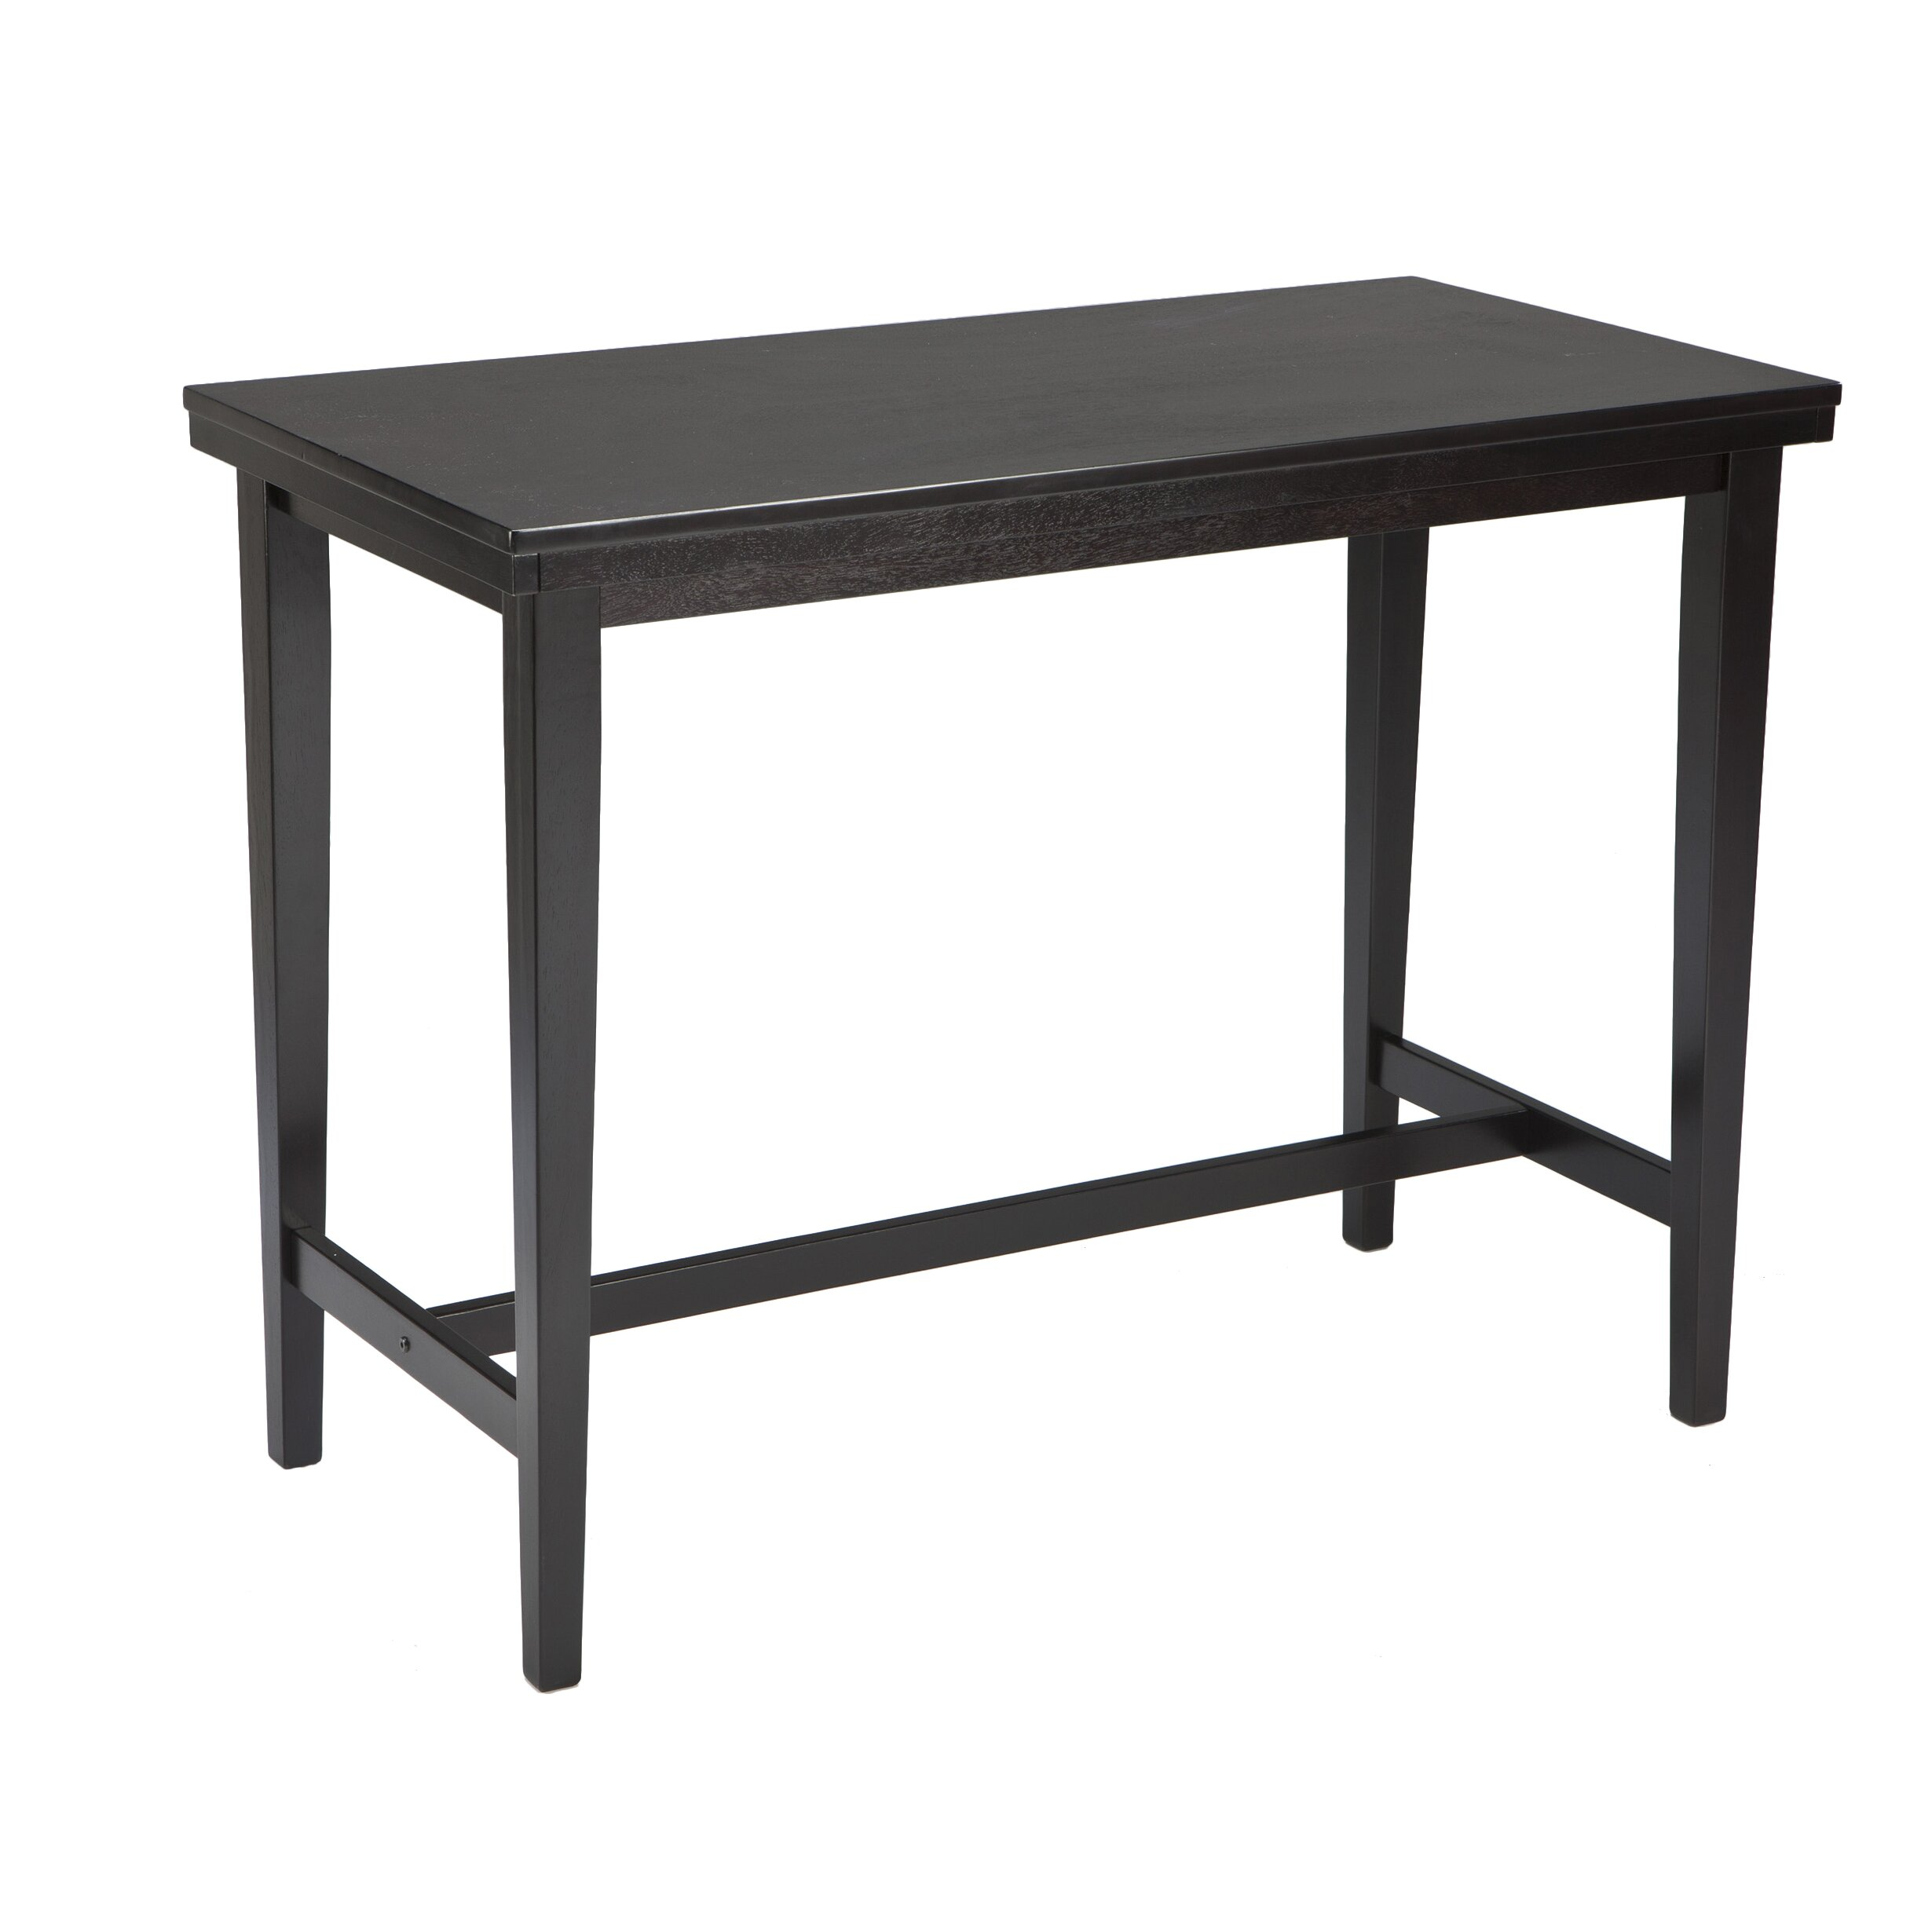 Signature design by ashley kimonte counter height dining for Wayfair dining table